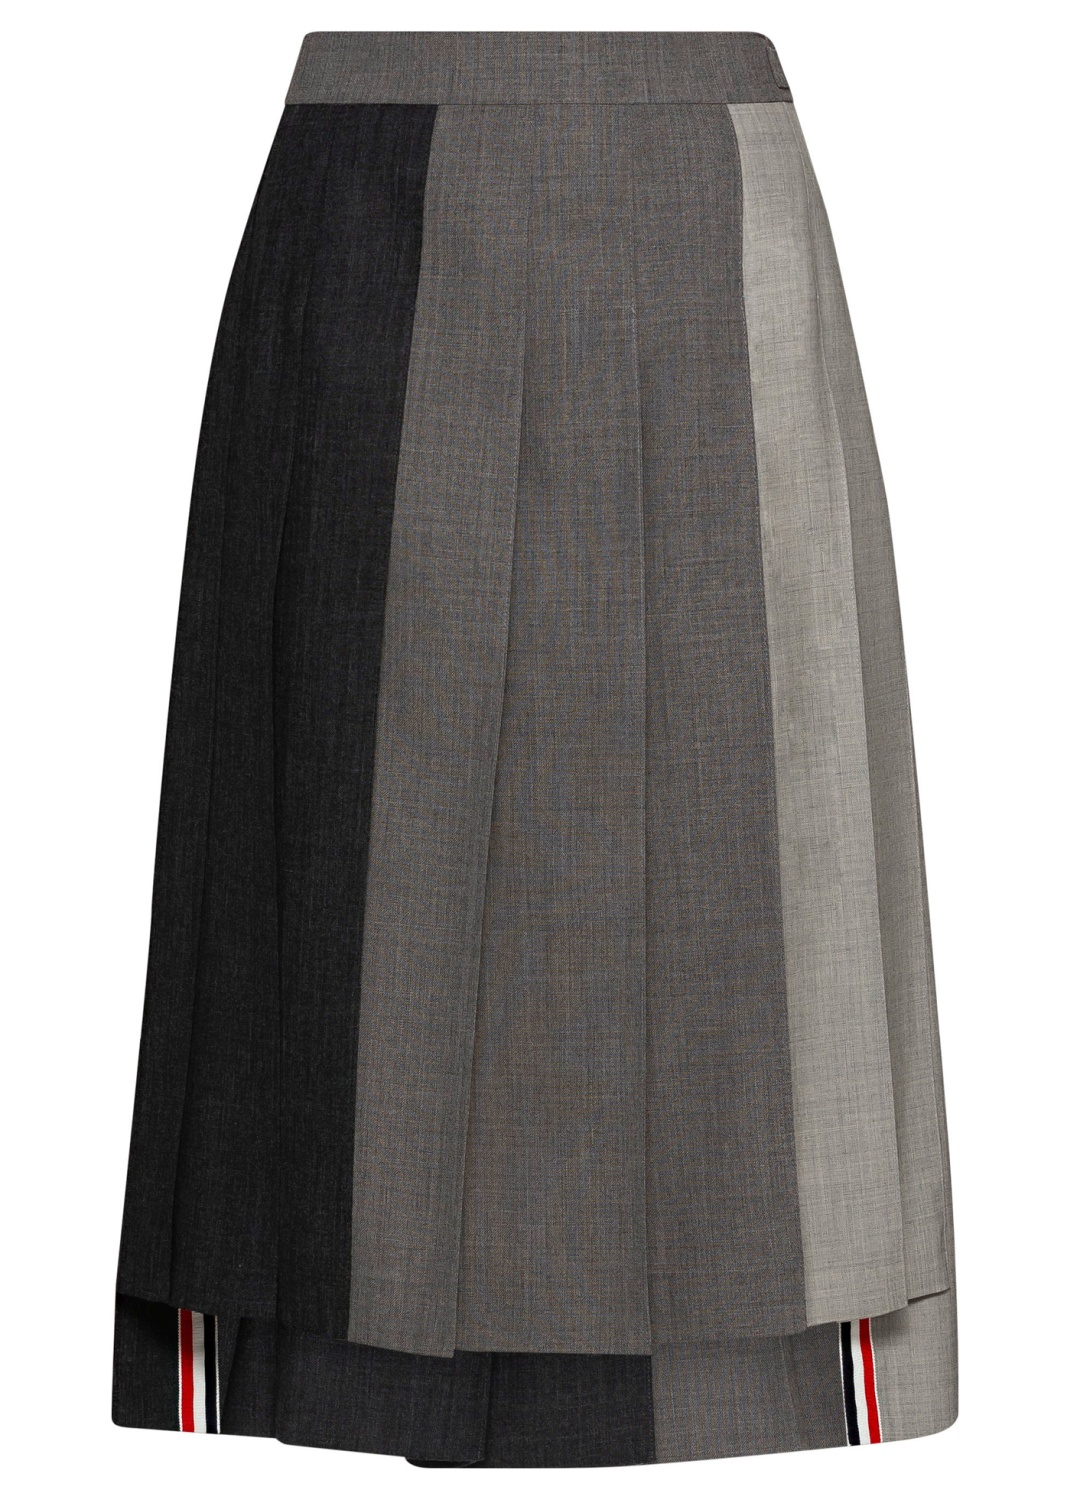 3 BELOW KNEE DROPPED BACK PLEATED SKIRT image number 0